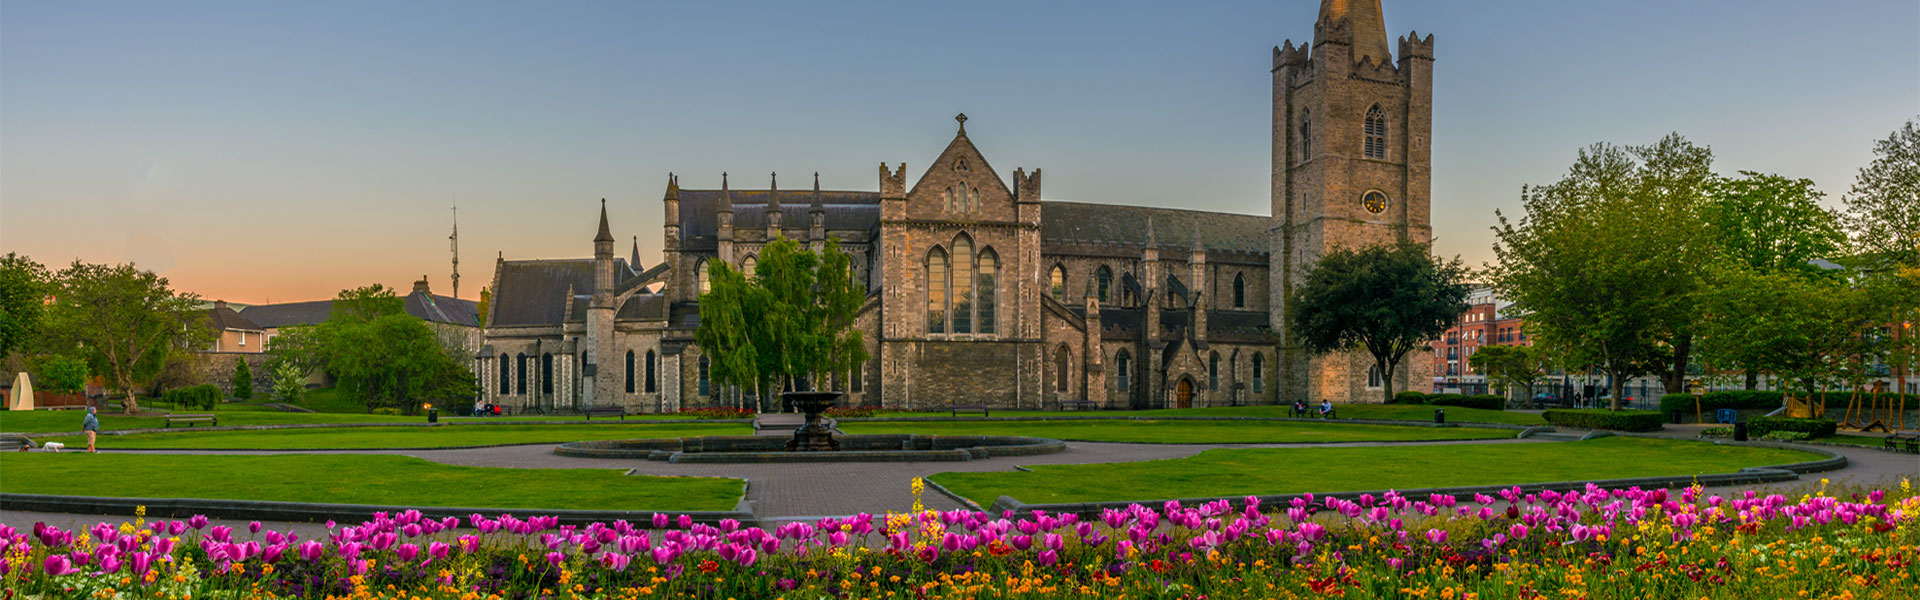 View of Dublin church with flowerbeds